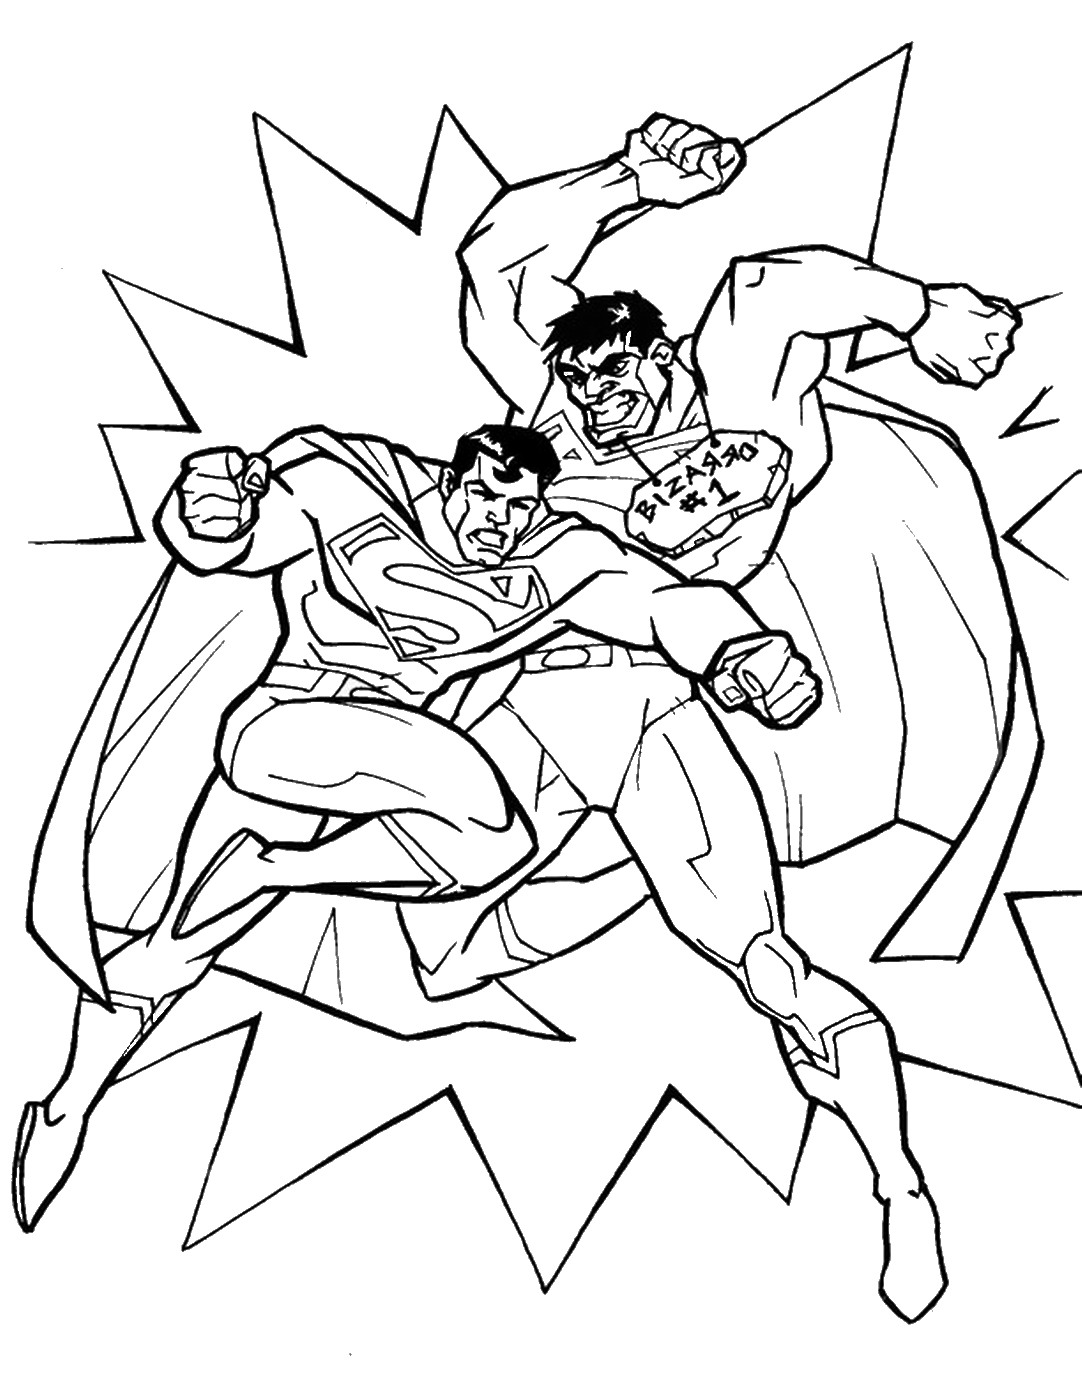 superman coloring pages free get this printable superman coloring pages 16529 free coloring superman pages